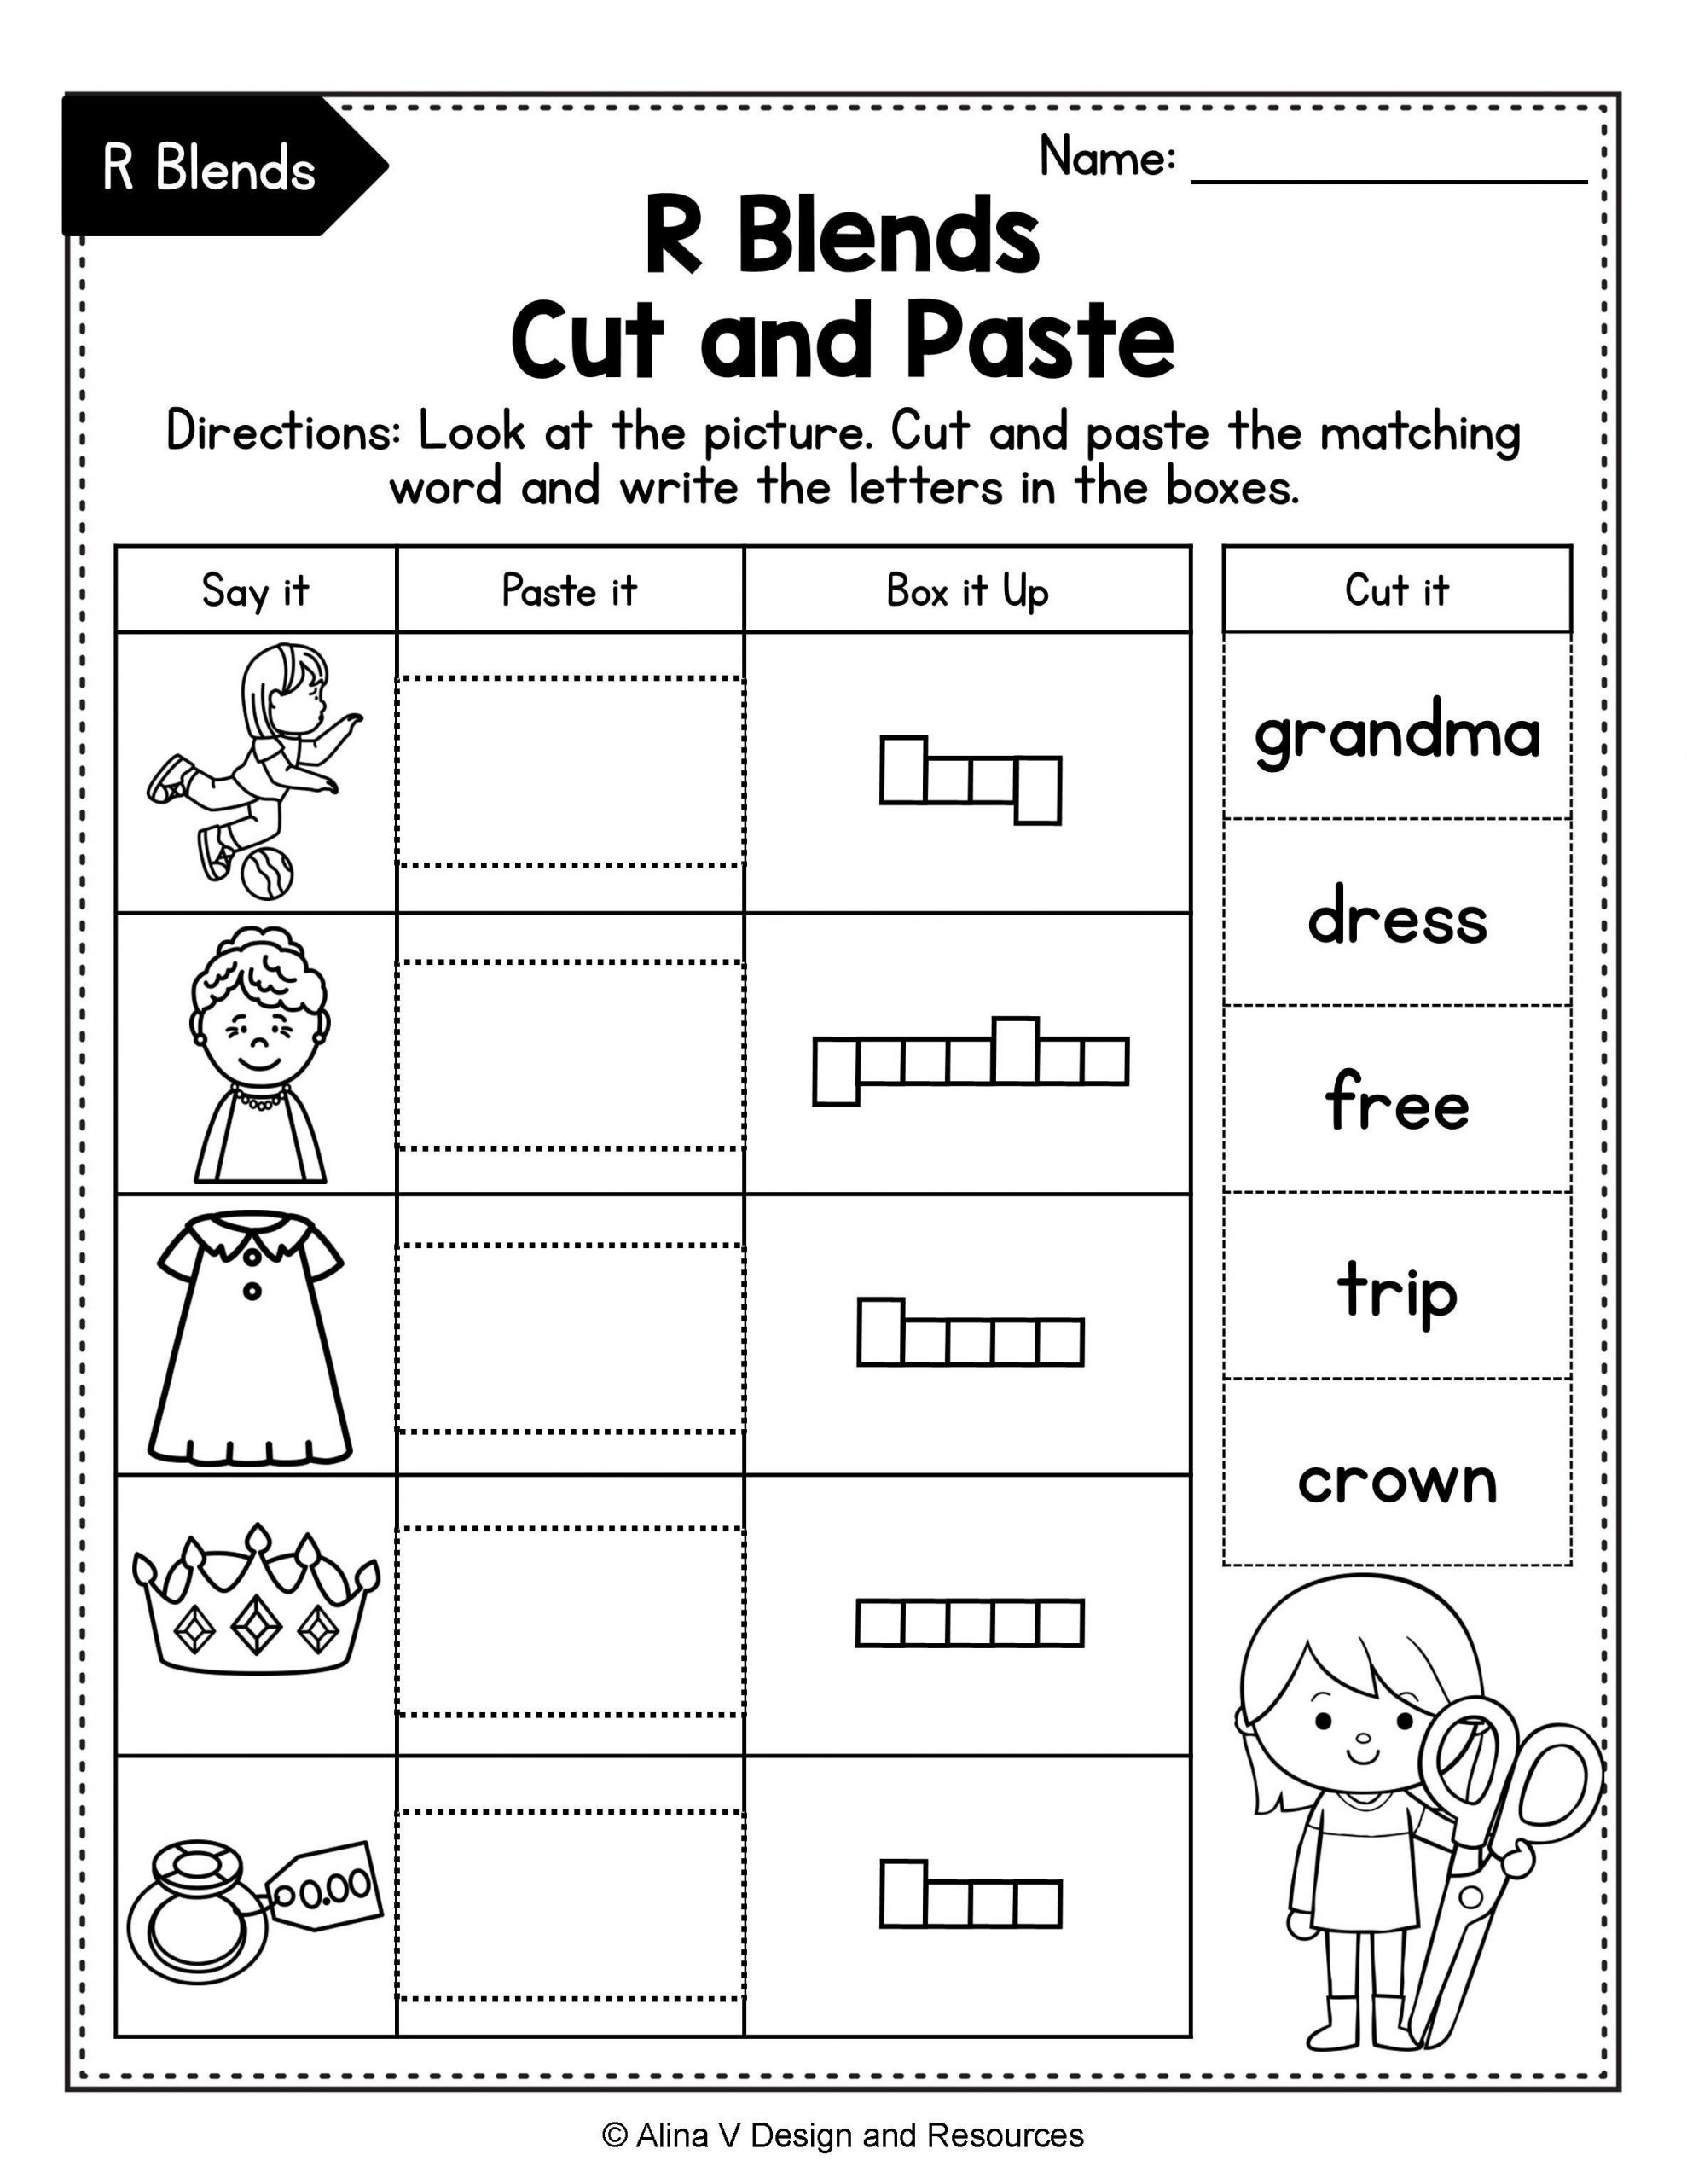 Consonant Blends Worksheets 3rd Grade Pin On Alina V Design